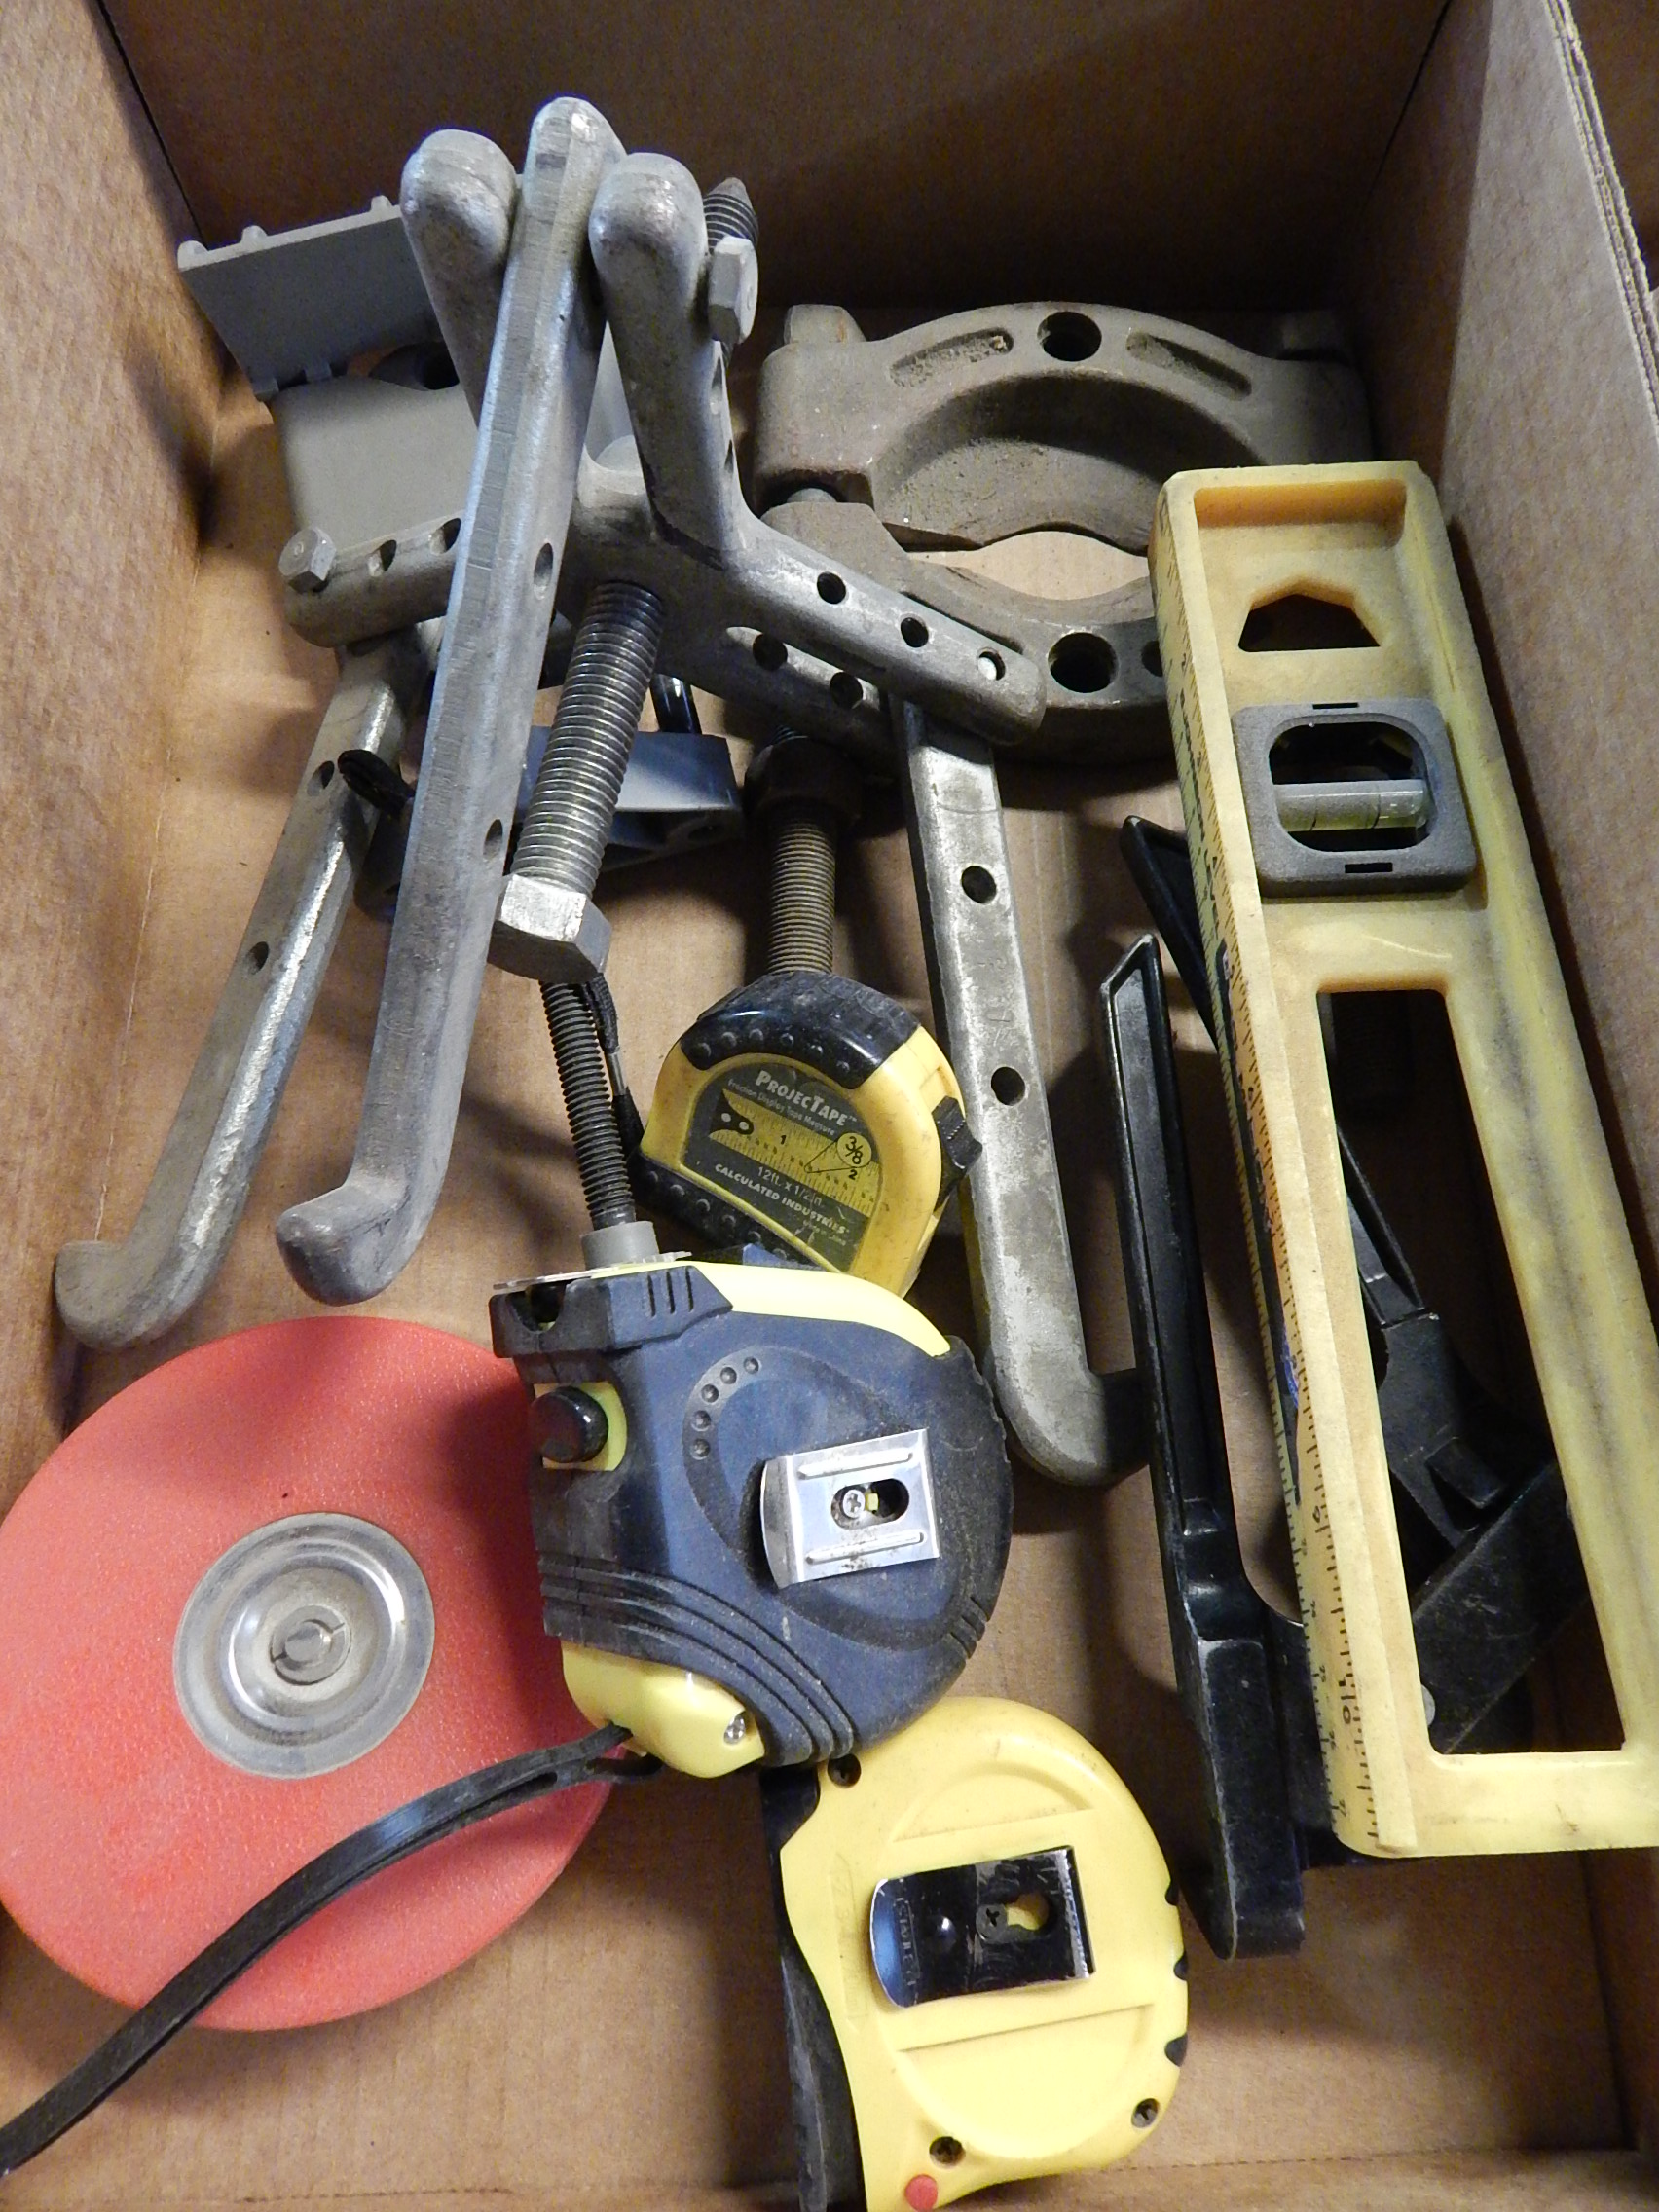 Lot 24 - Gear Puller, Bearing Puller and Misc. Tools